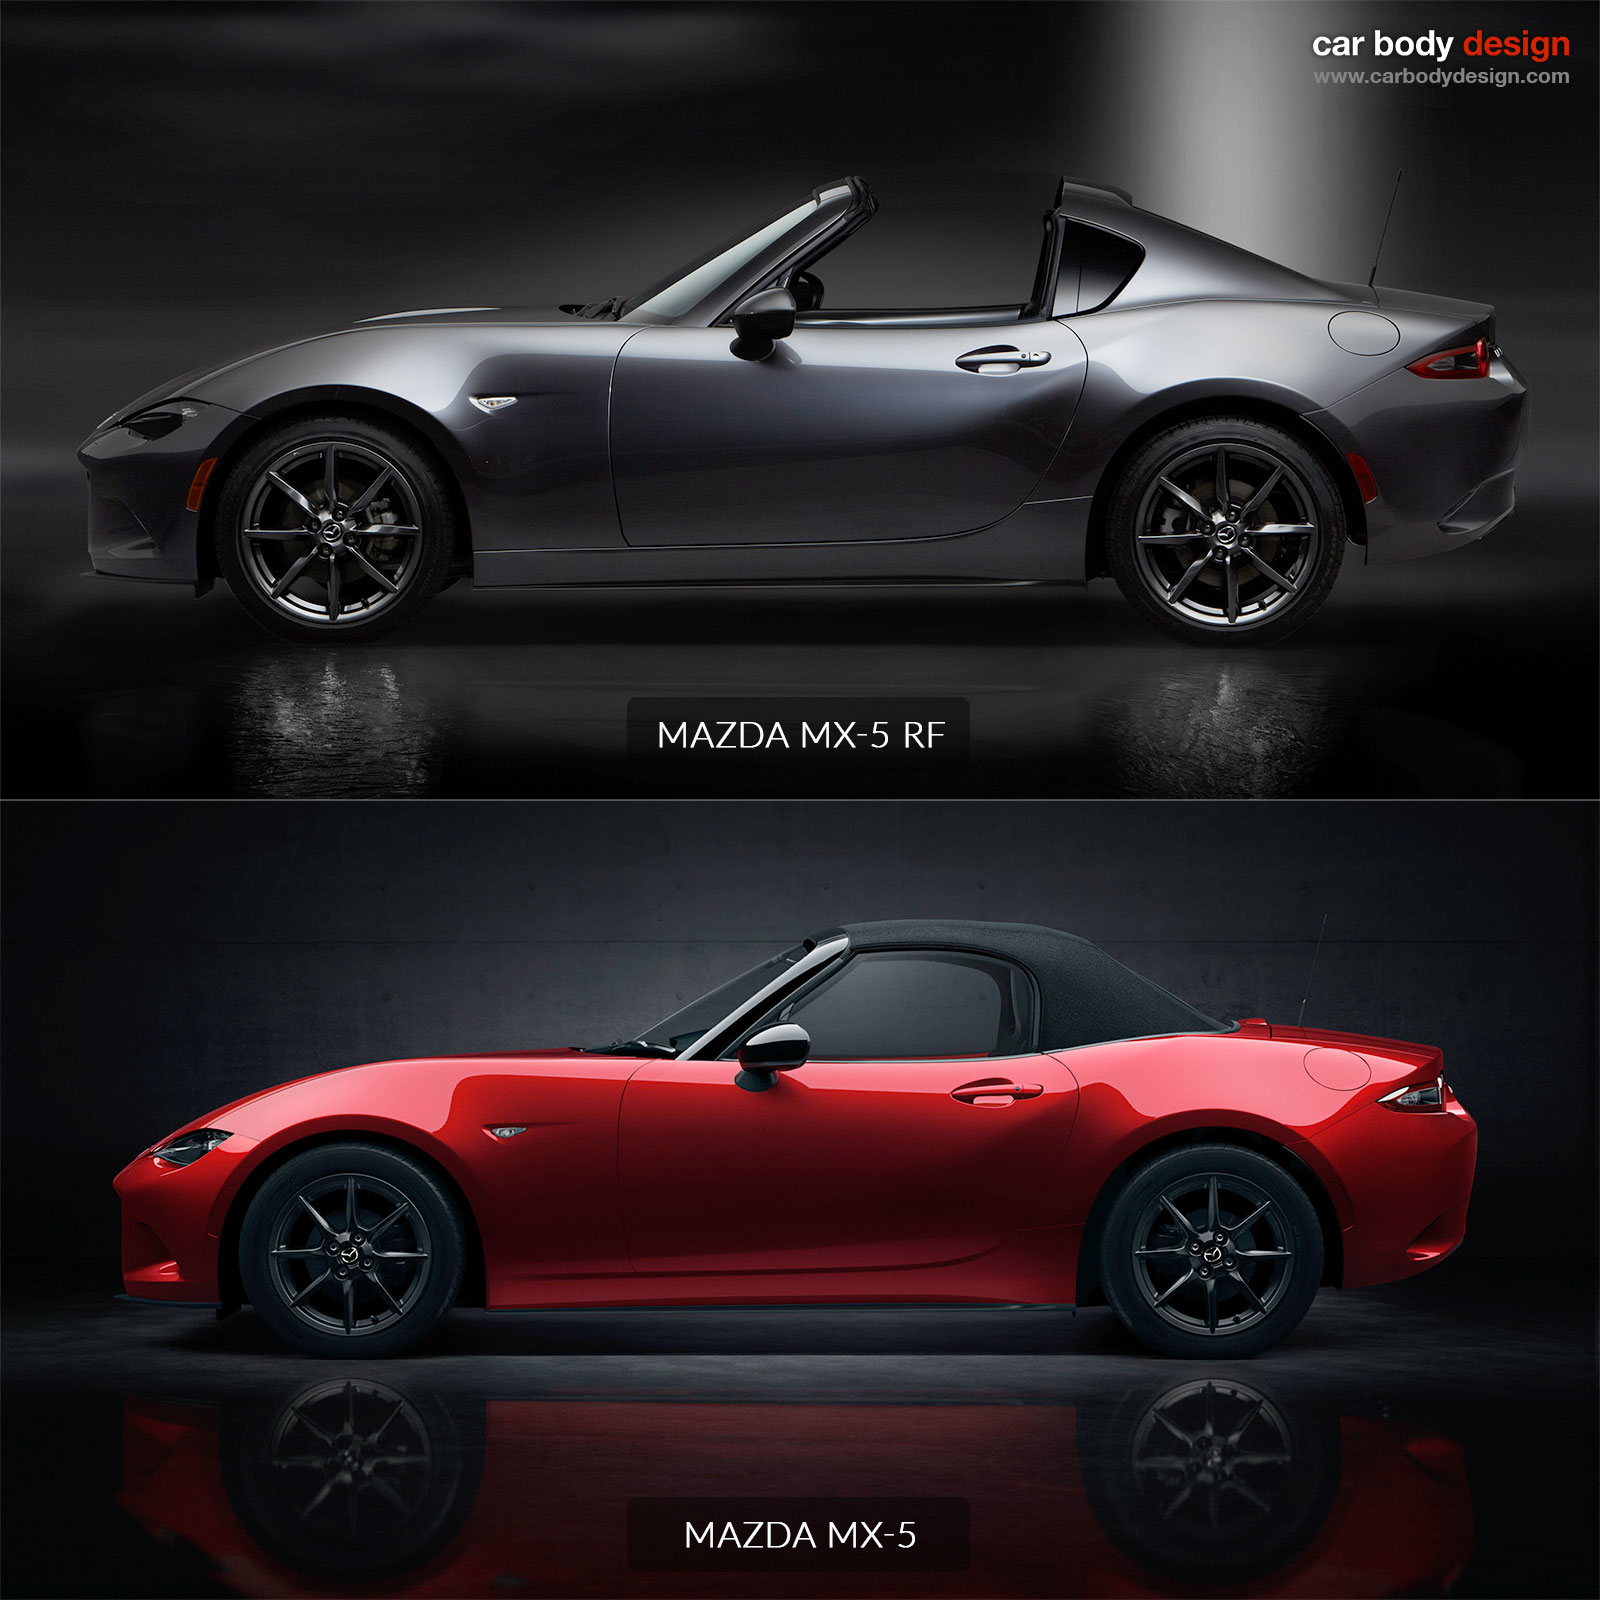 mazda mx 5 rf vs mx 5 design comparison car body design. Black Bedroom Furniture Sets. Home Design Ideas